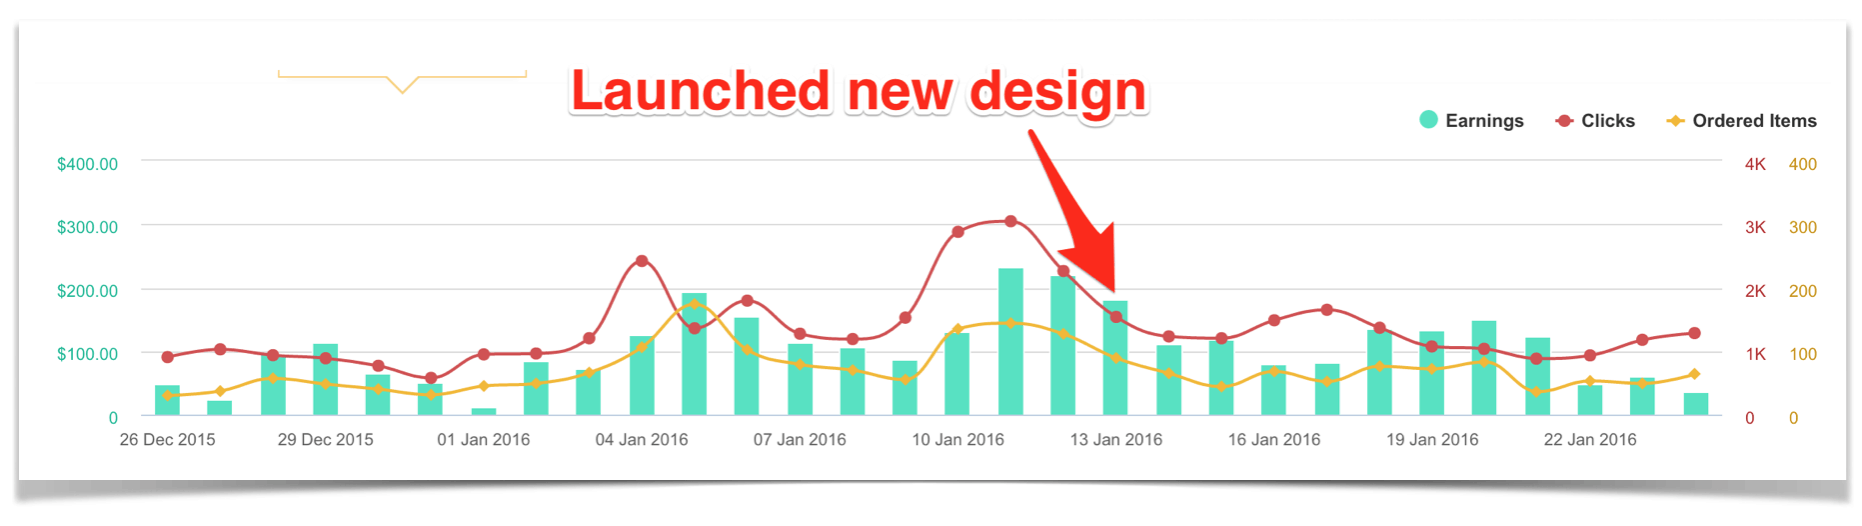 Amazon Earnings after Launching New Design